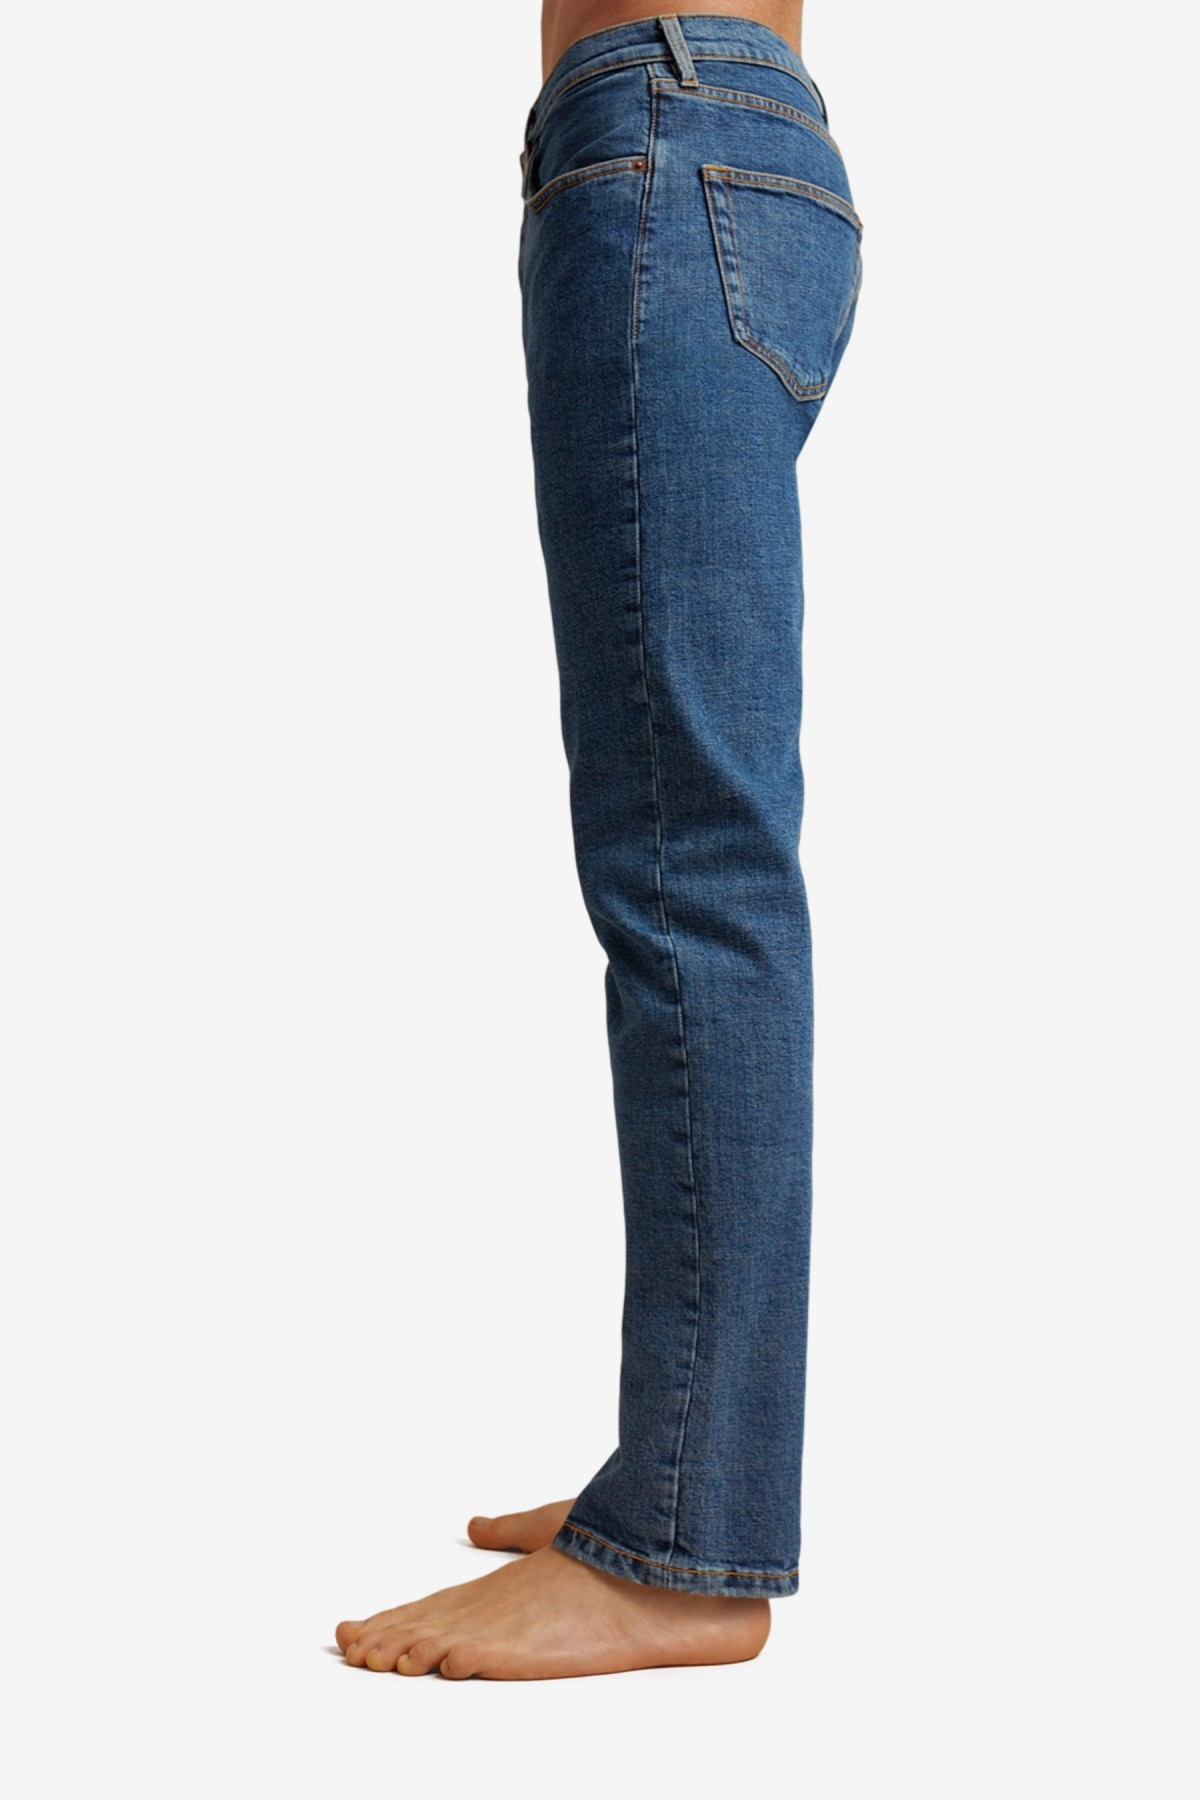 Jeanerica TM005 Tapered Fit in Vintage 95